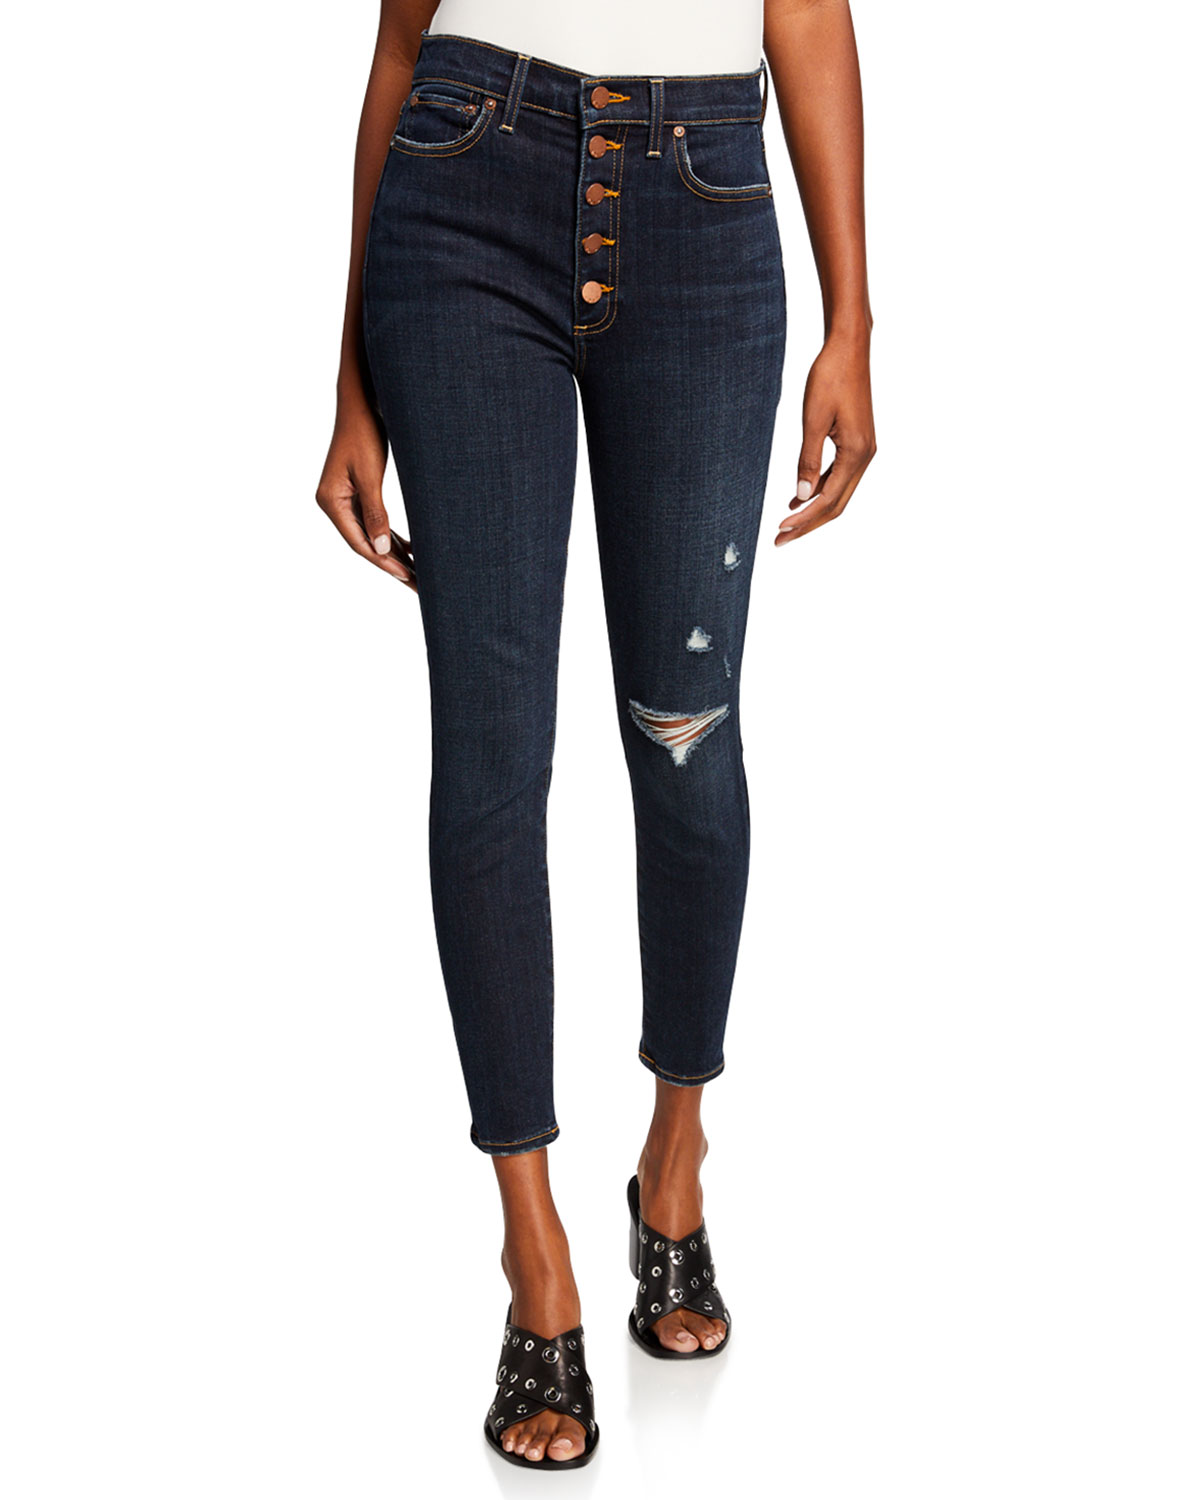 ALICE + OLIVIA JEANS Good High-Rise Exposed Button Skinny Jeans in Make A Move